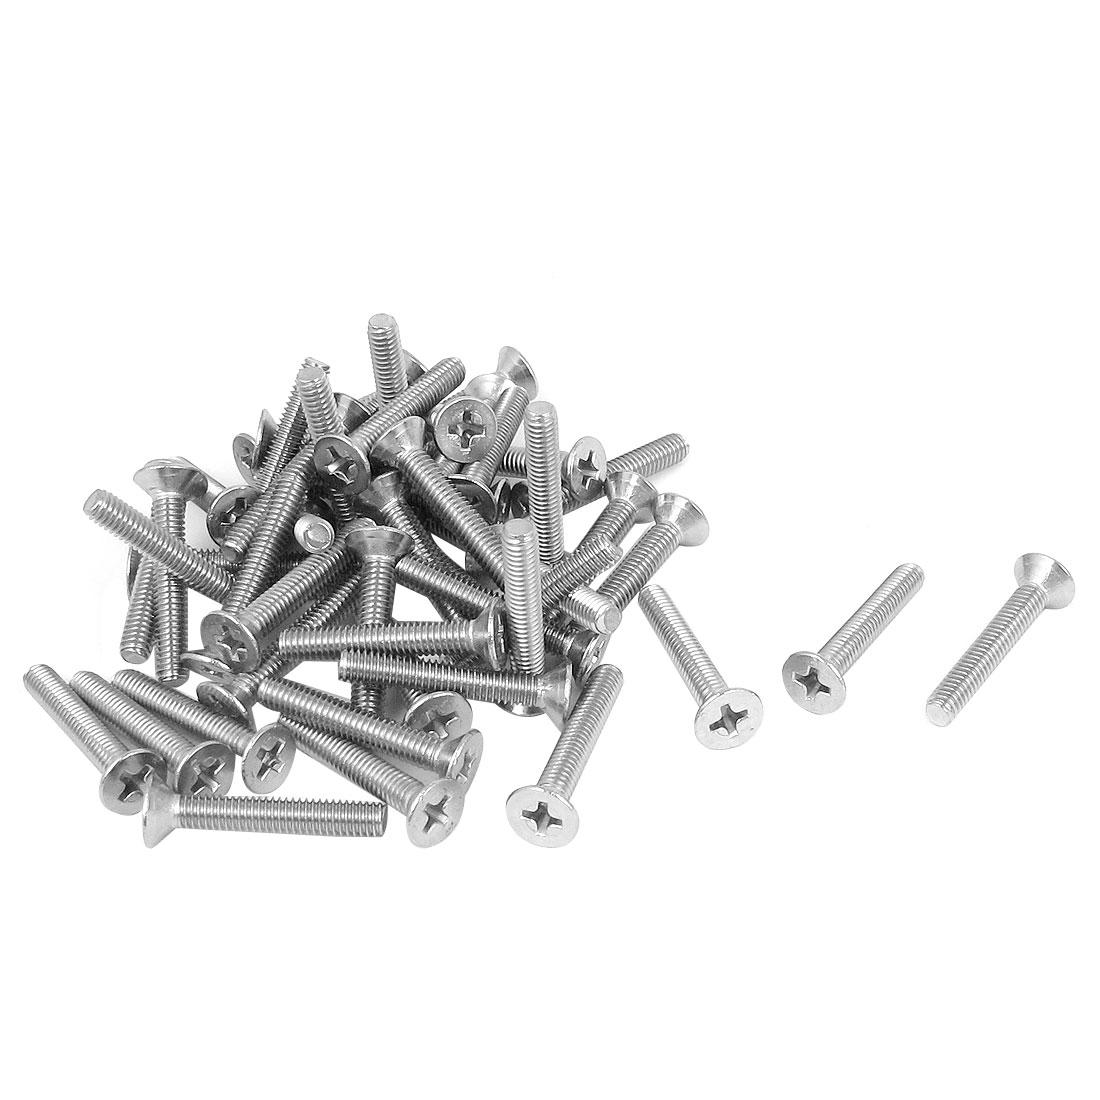 M4 x 25mm Metric Phillips Flat Head Countersunk Bolts Machine Screws 50pcs